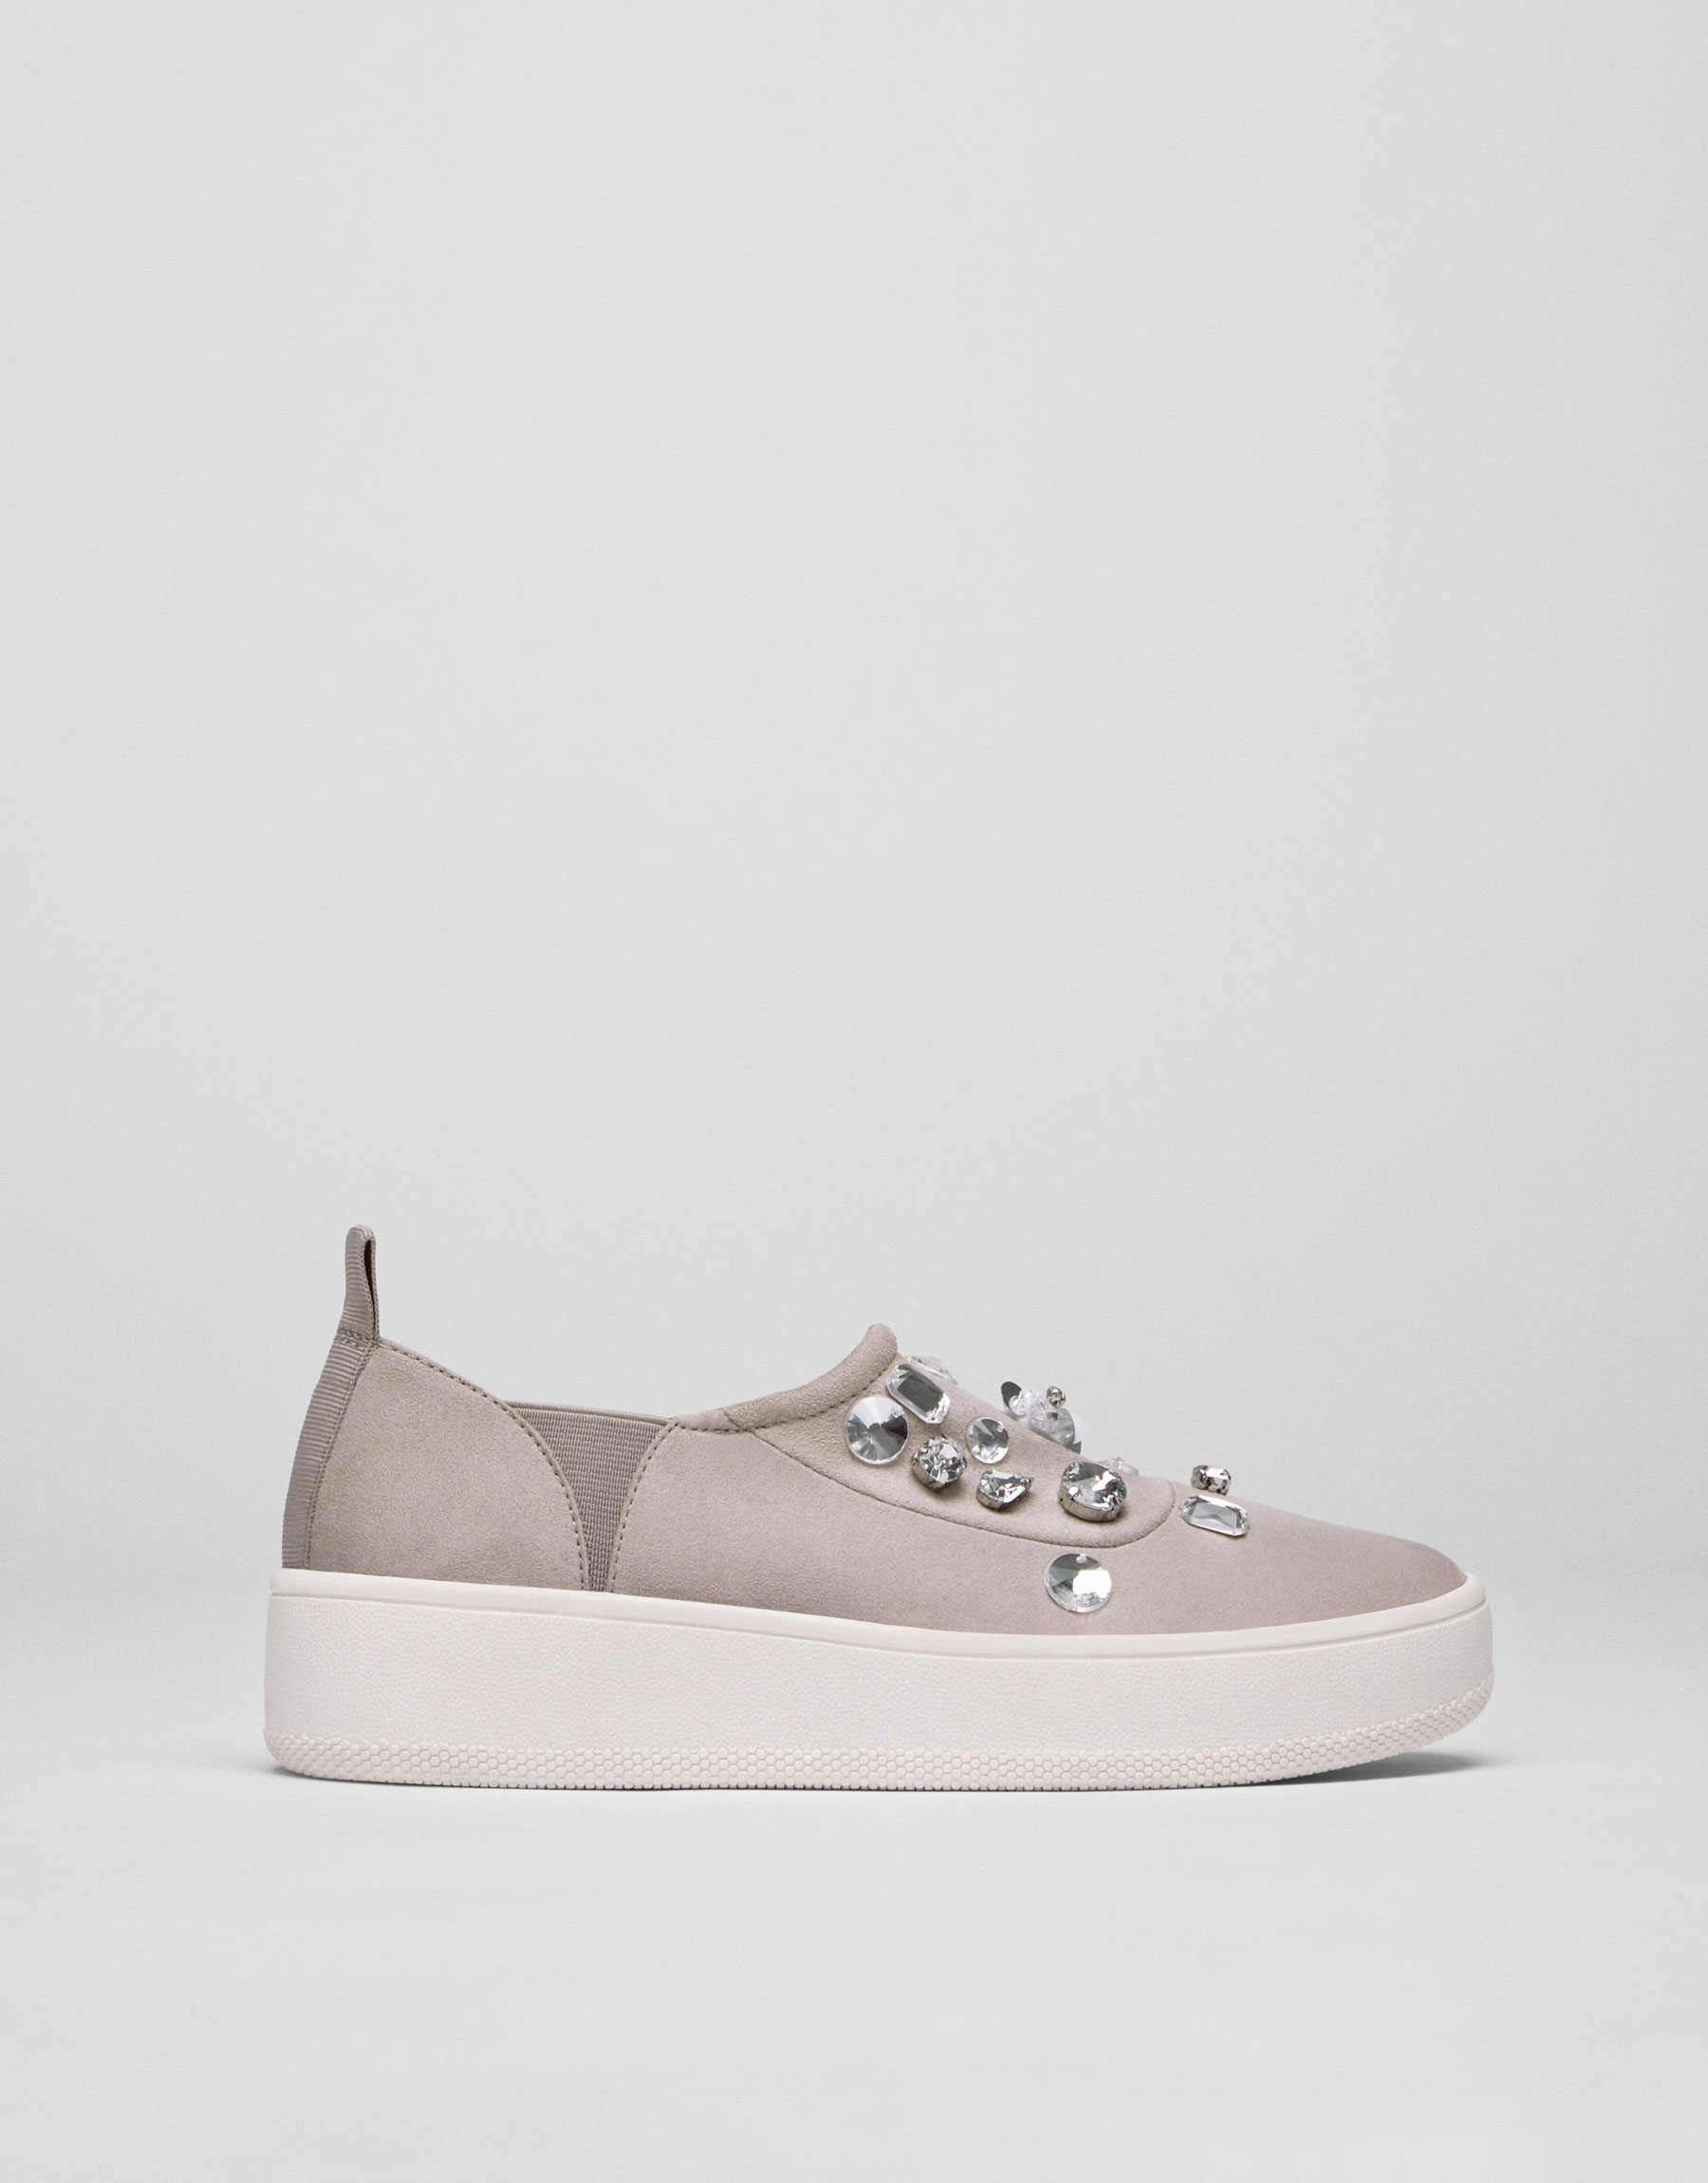 Sport sneakers with gem details